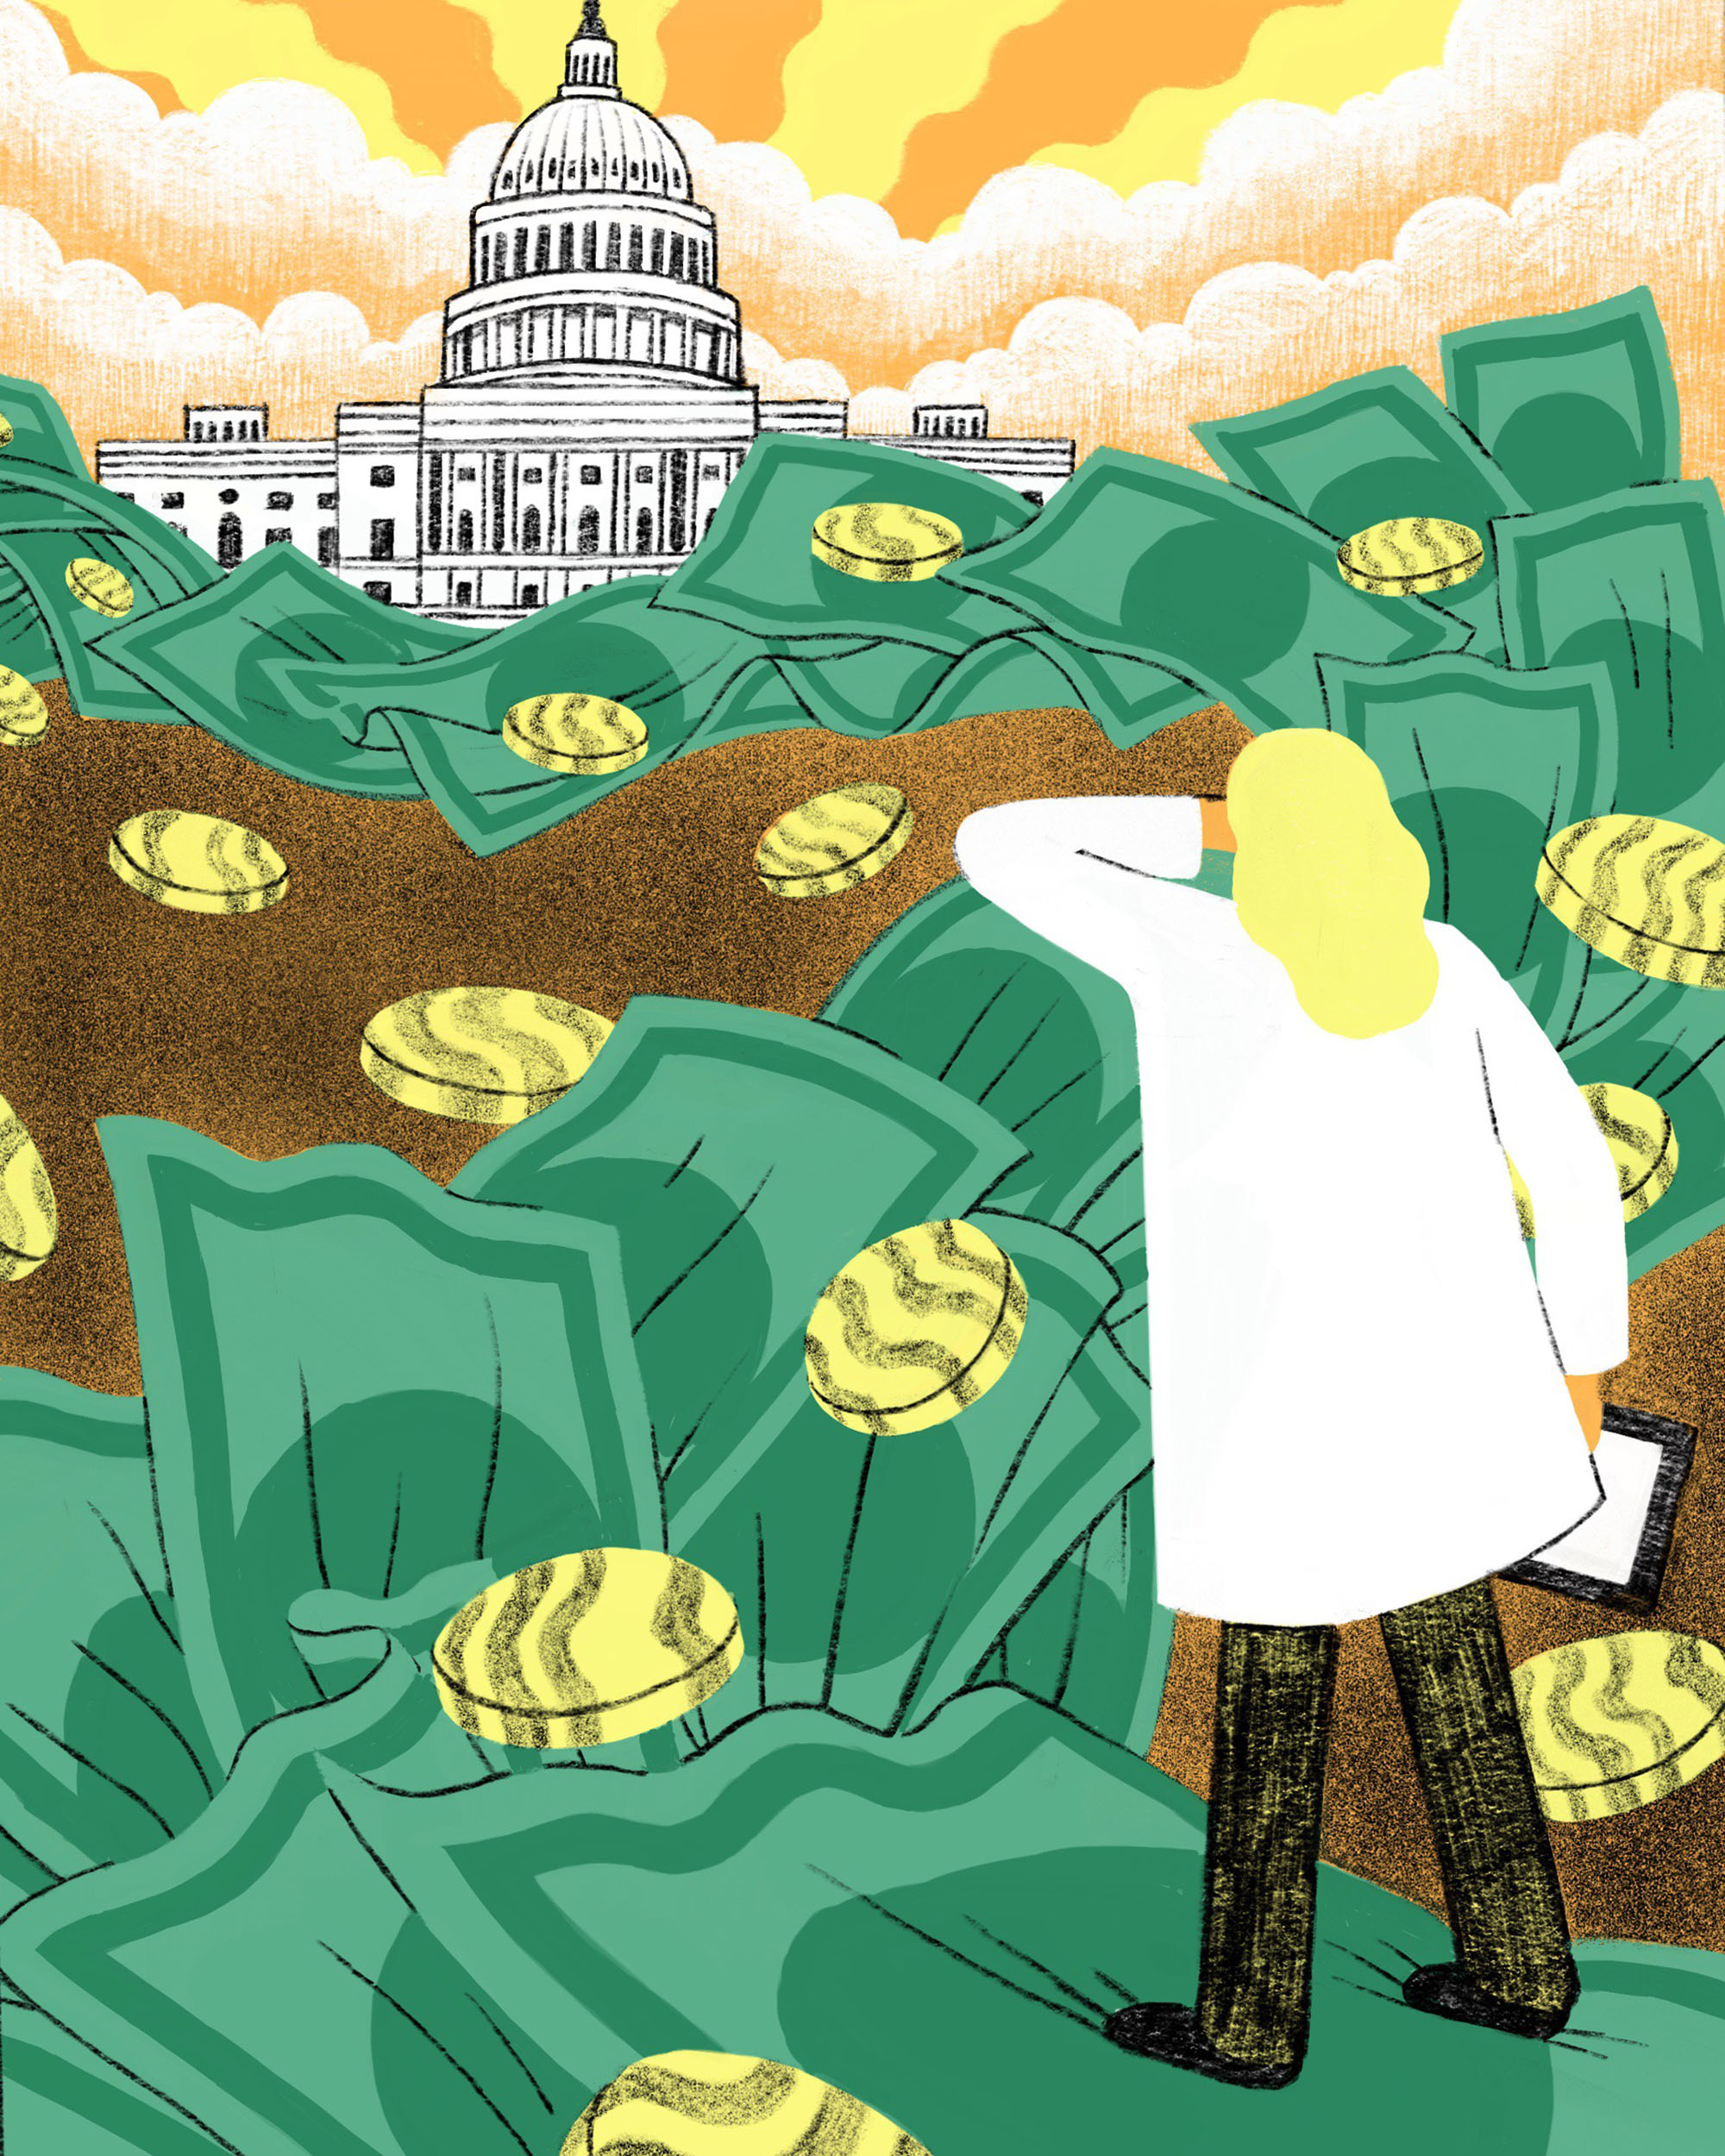 Illustration of woman in labcoat surrounded by giant paper bills and coins looking off to the U.S. Capitol building in the background.